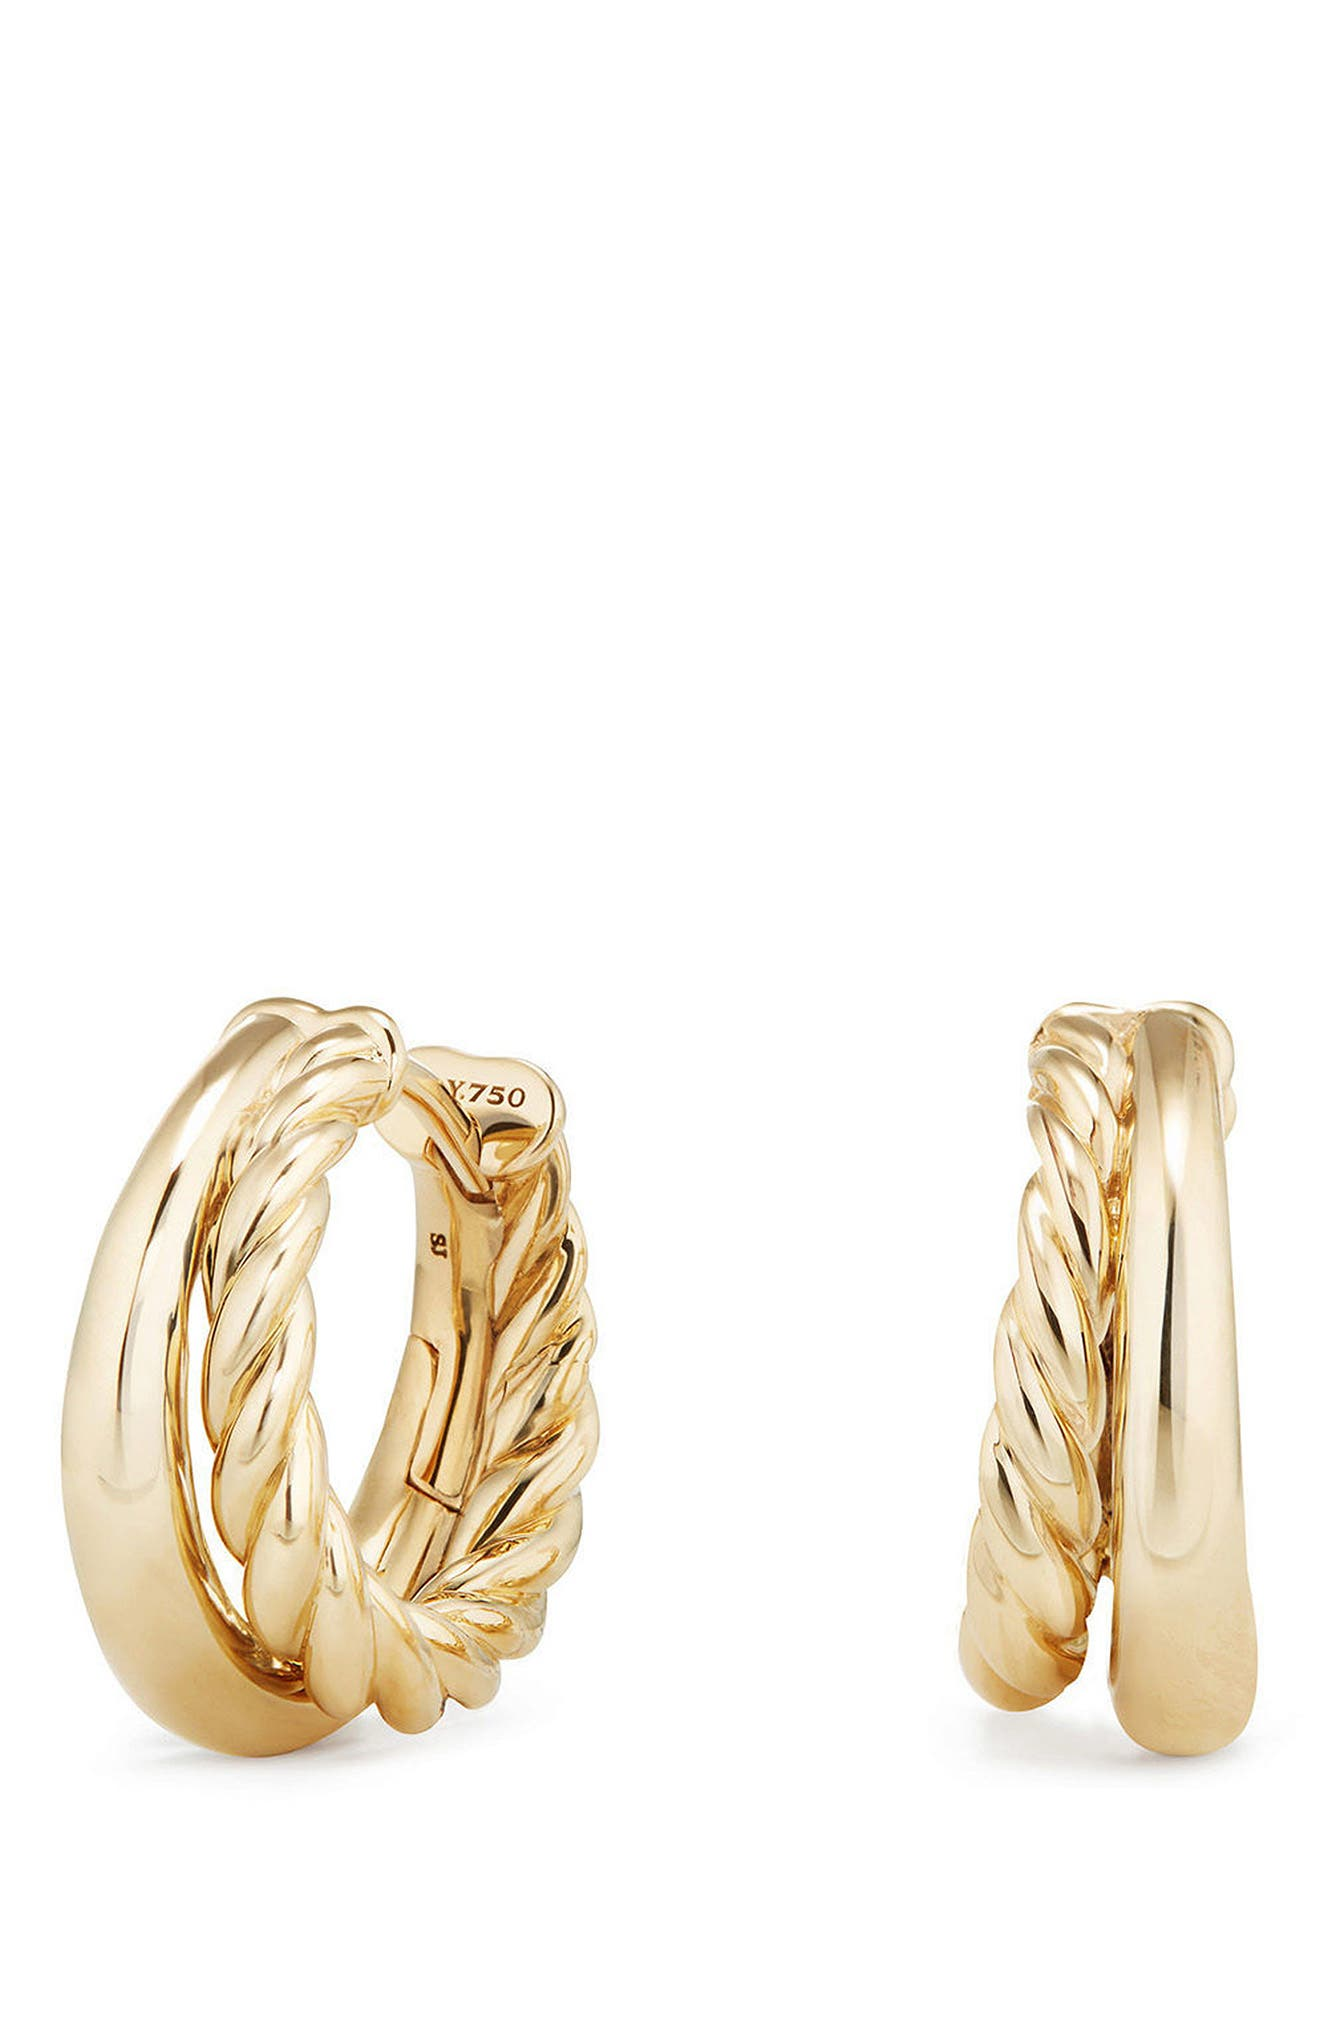 Pure Form Hoop Earrings in 18K Gold, 12mm,                         Main,                         color, YELLOW GOLD